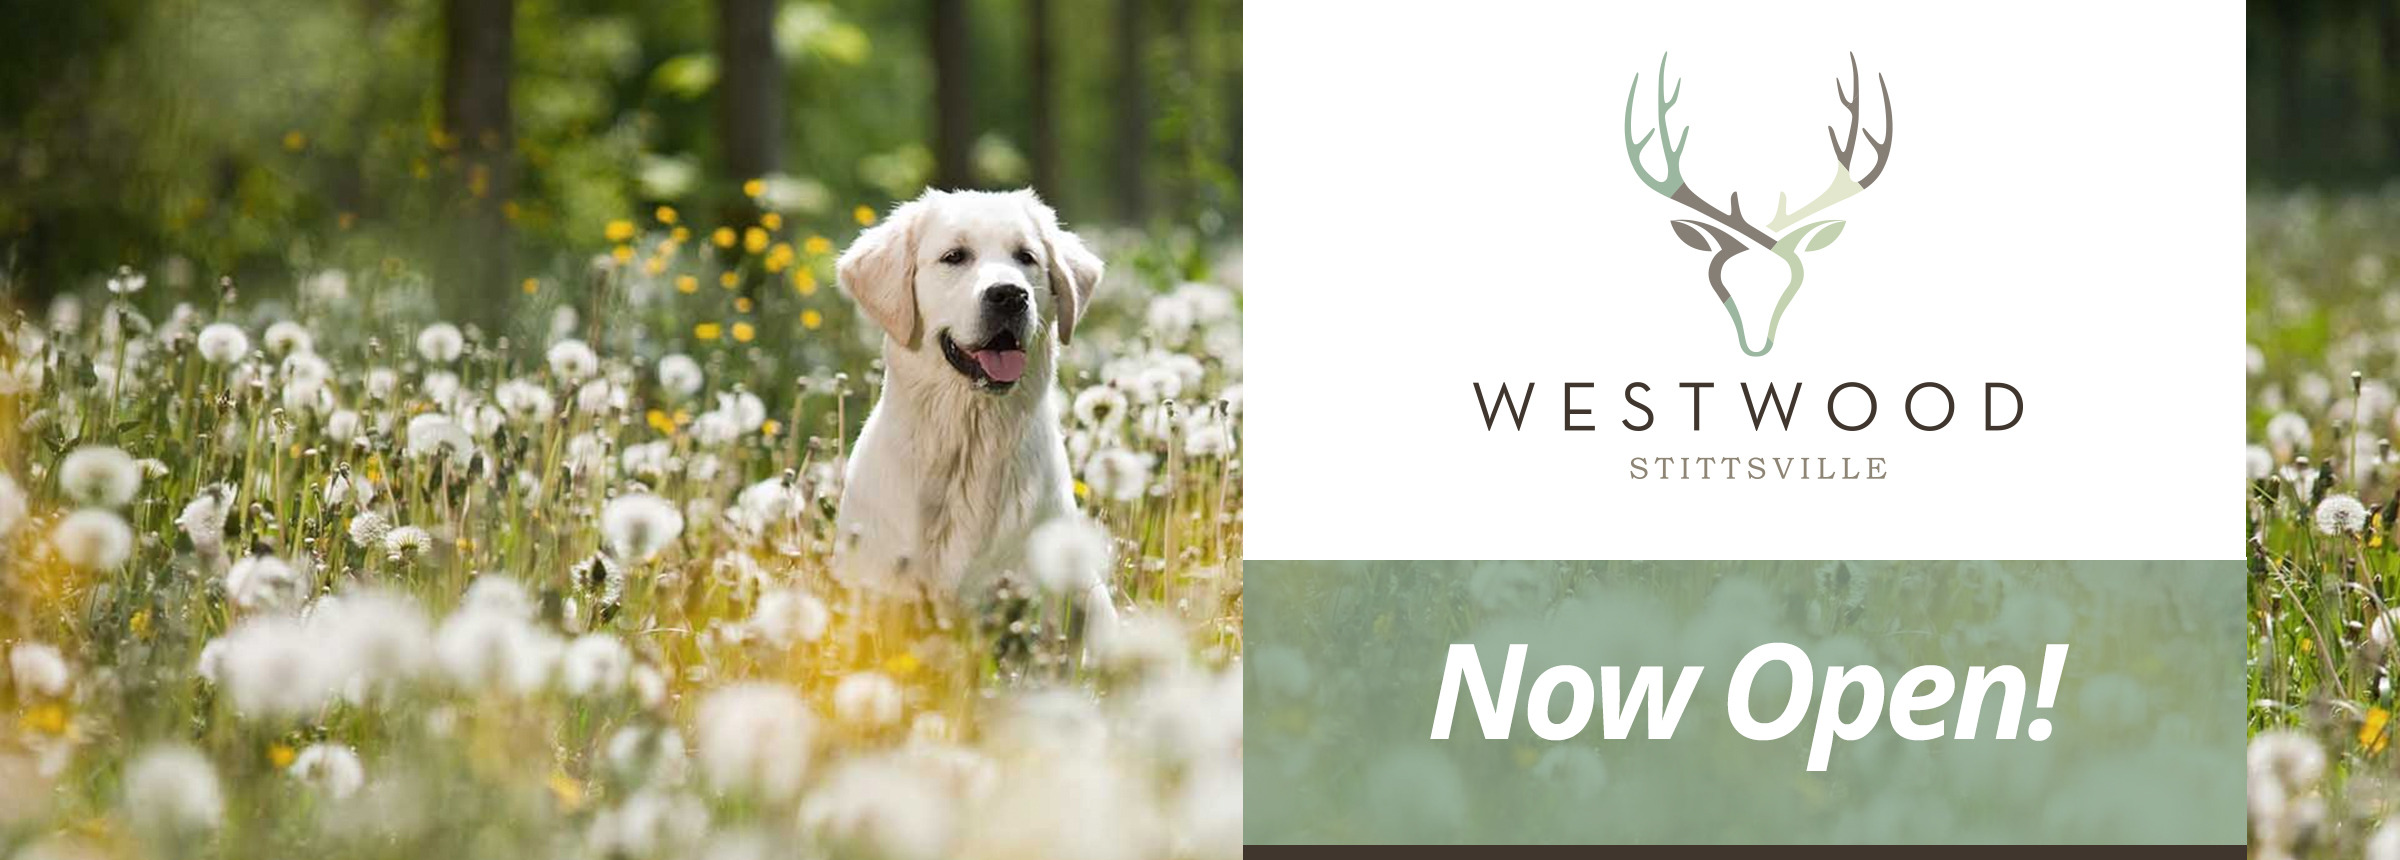 Westwood Stittsville Opening Fall 2018, a modern new community on the edge of Stittsville in Ottawa West.